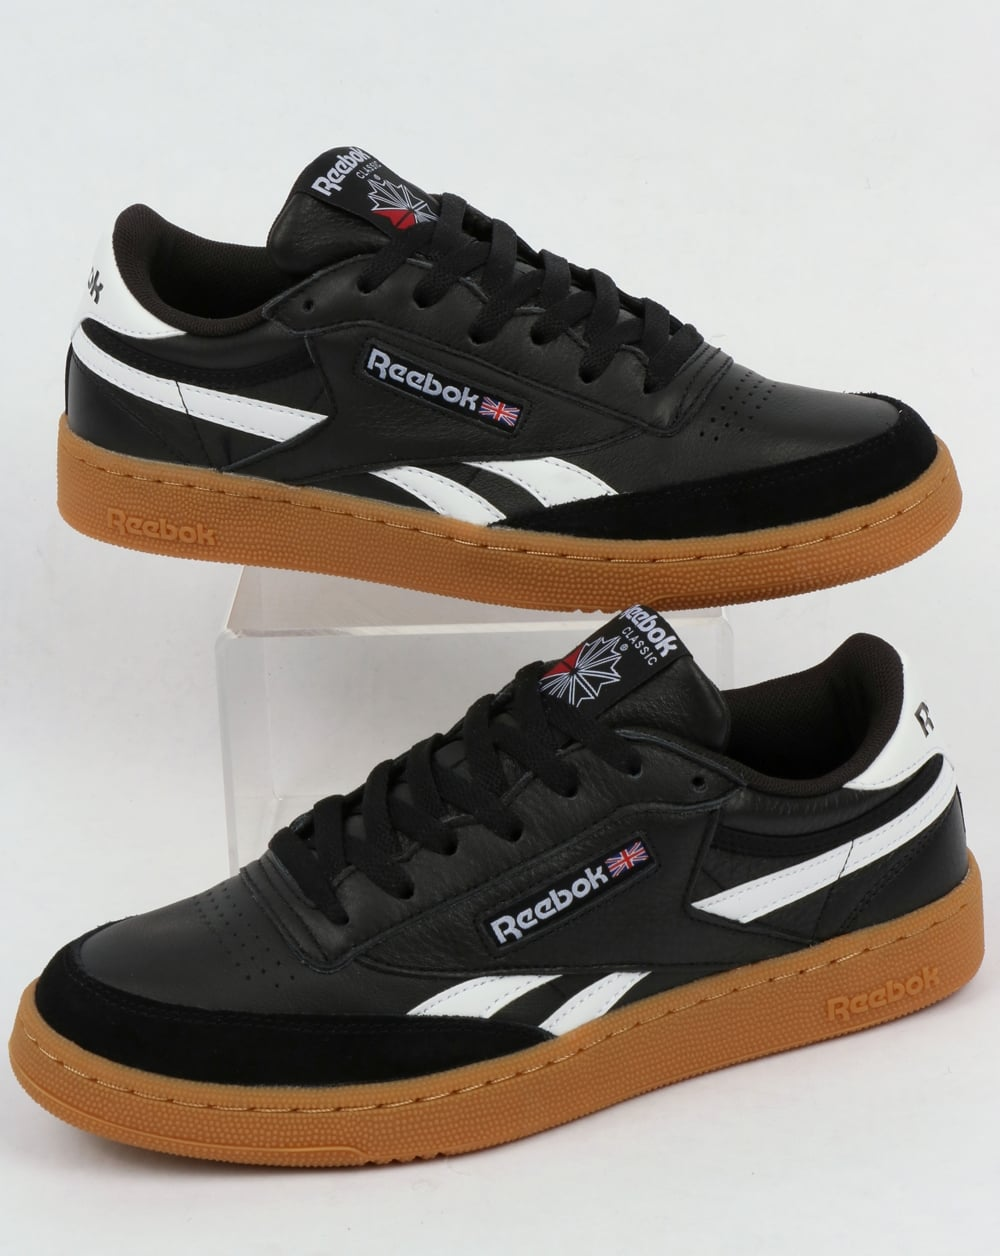 daa967b3df Reebok Revenge Plus Gum Trainers Black/White/Gum